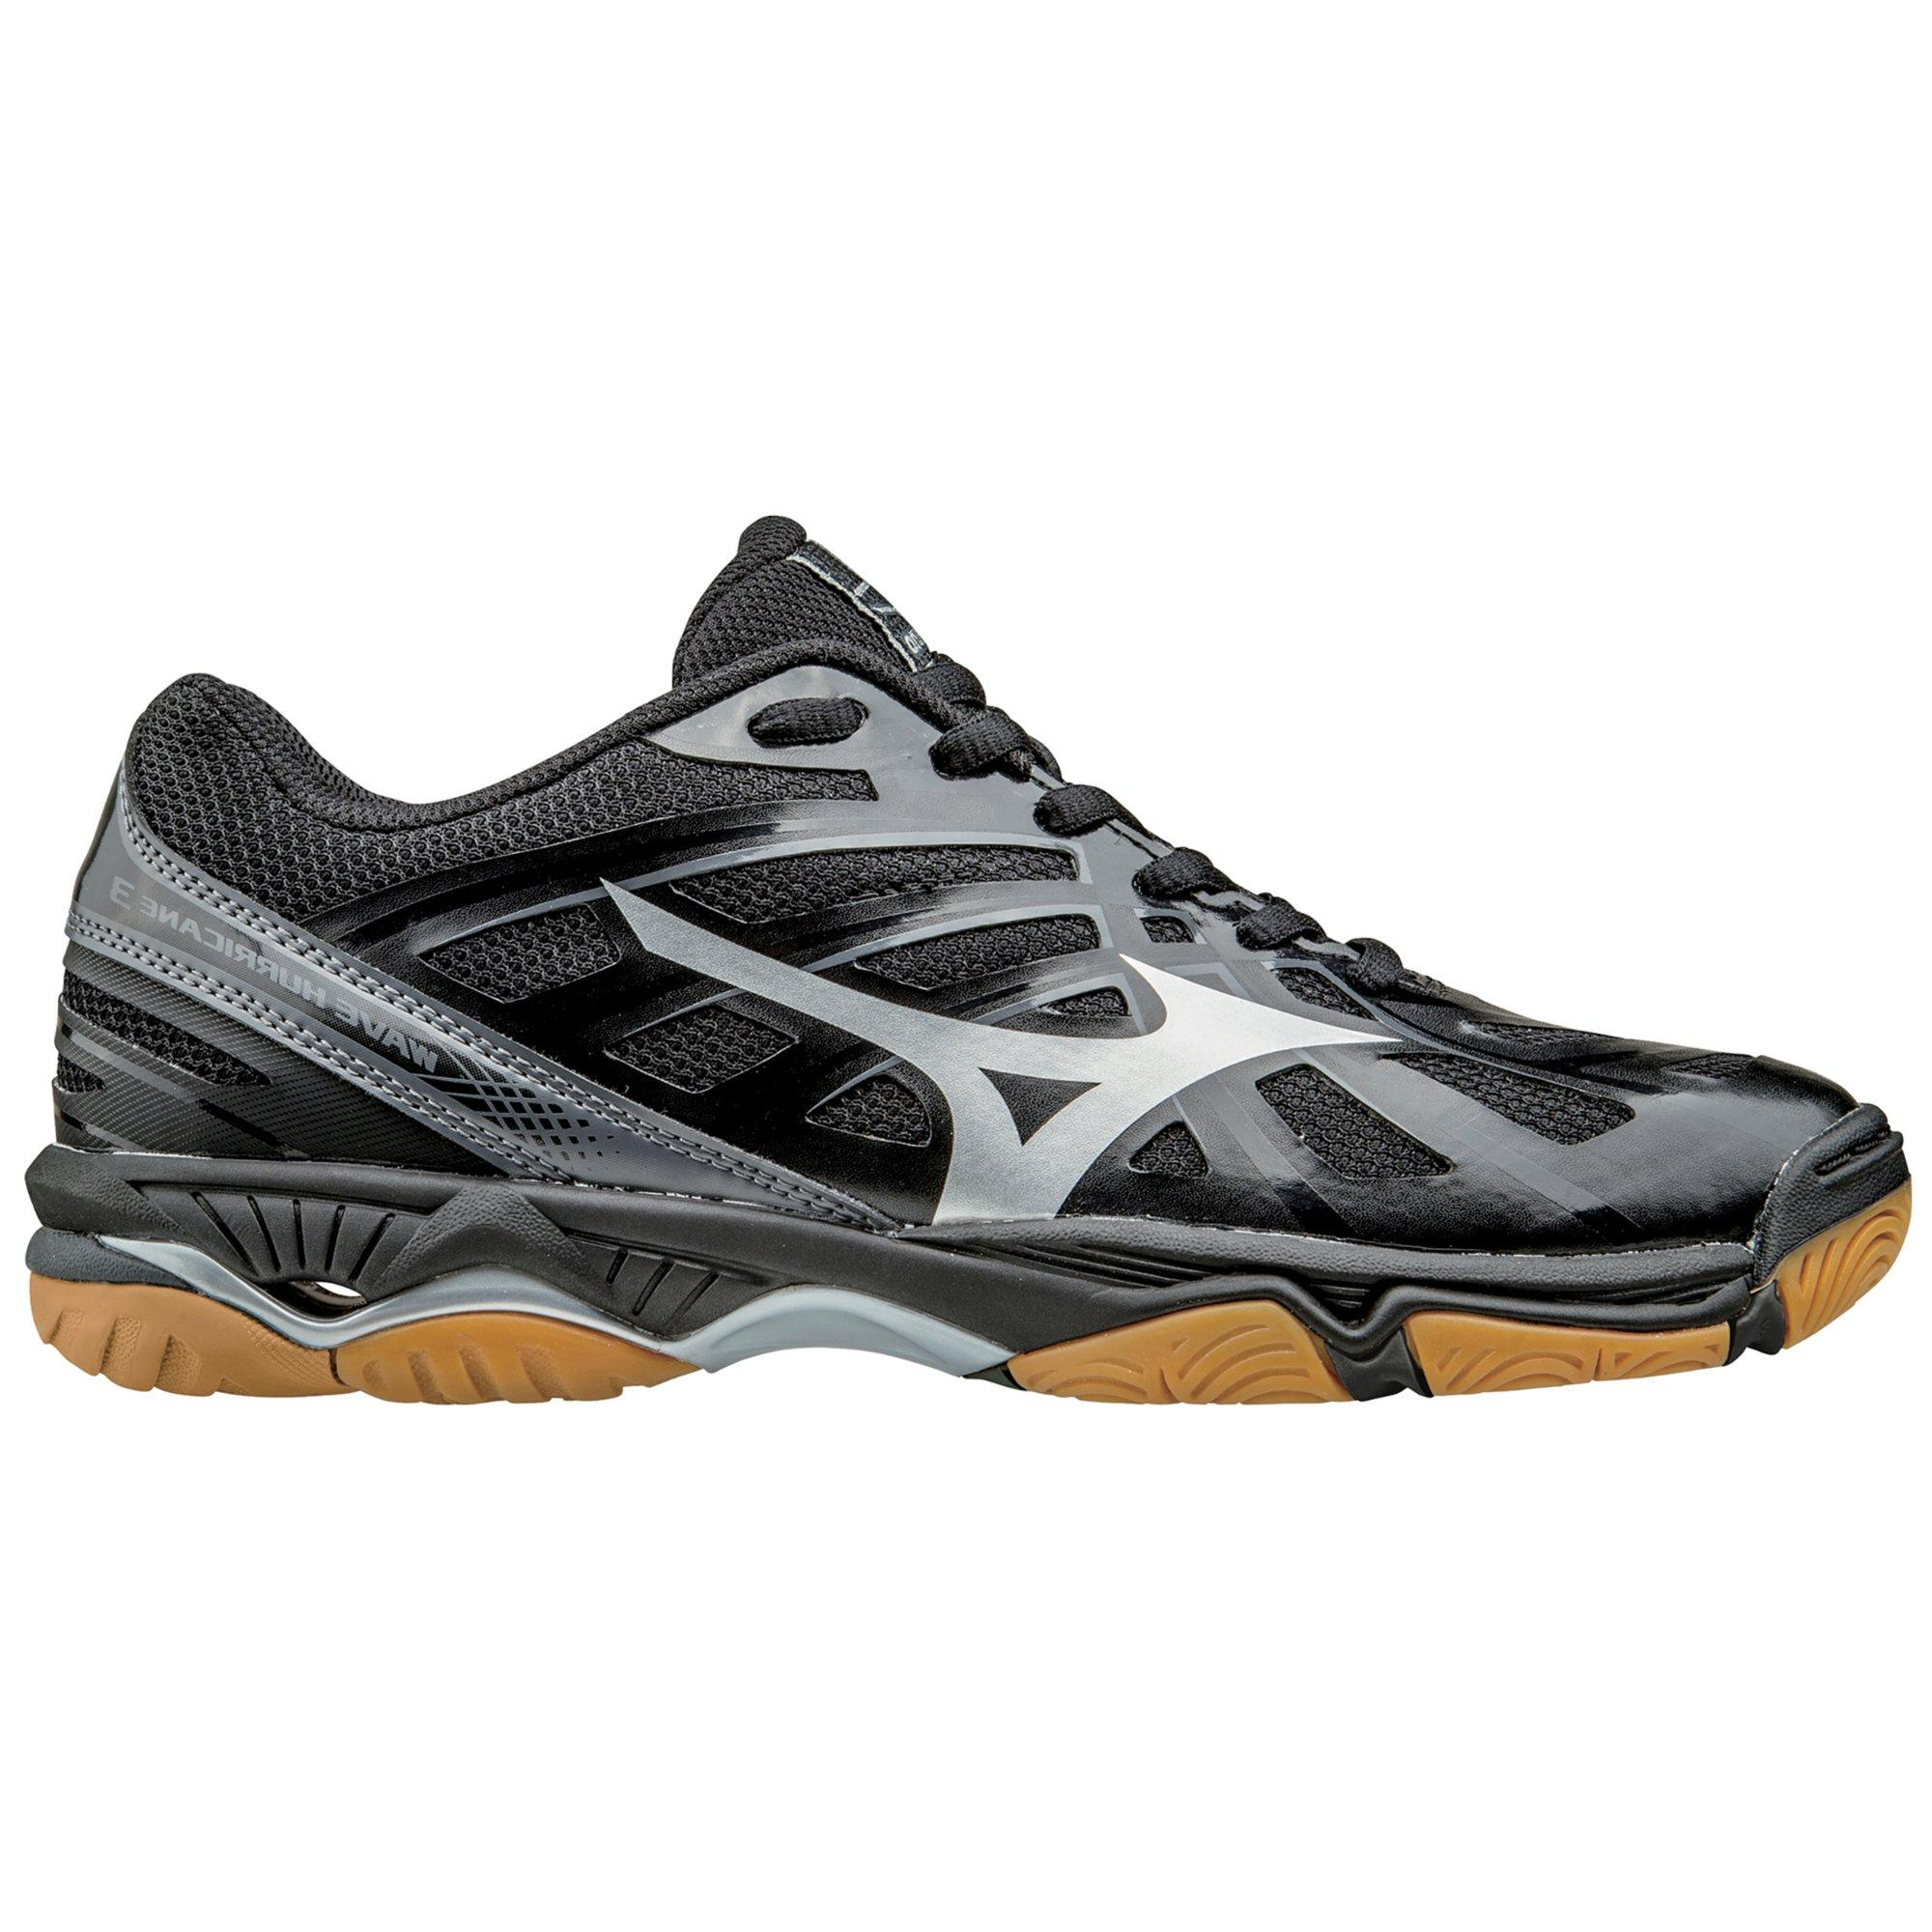 mizuno women's wave hurricane 3 volleyball shoes reviews history